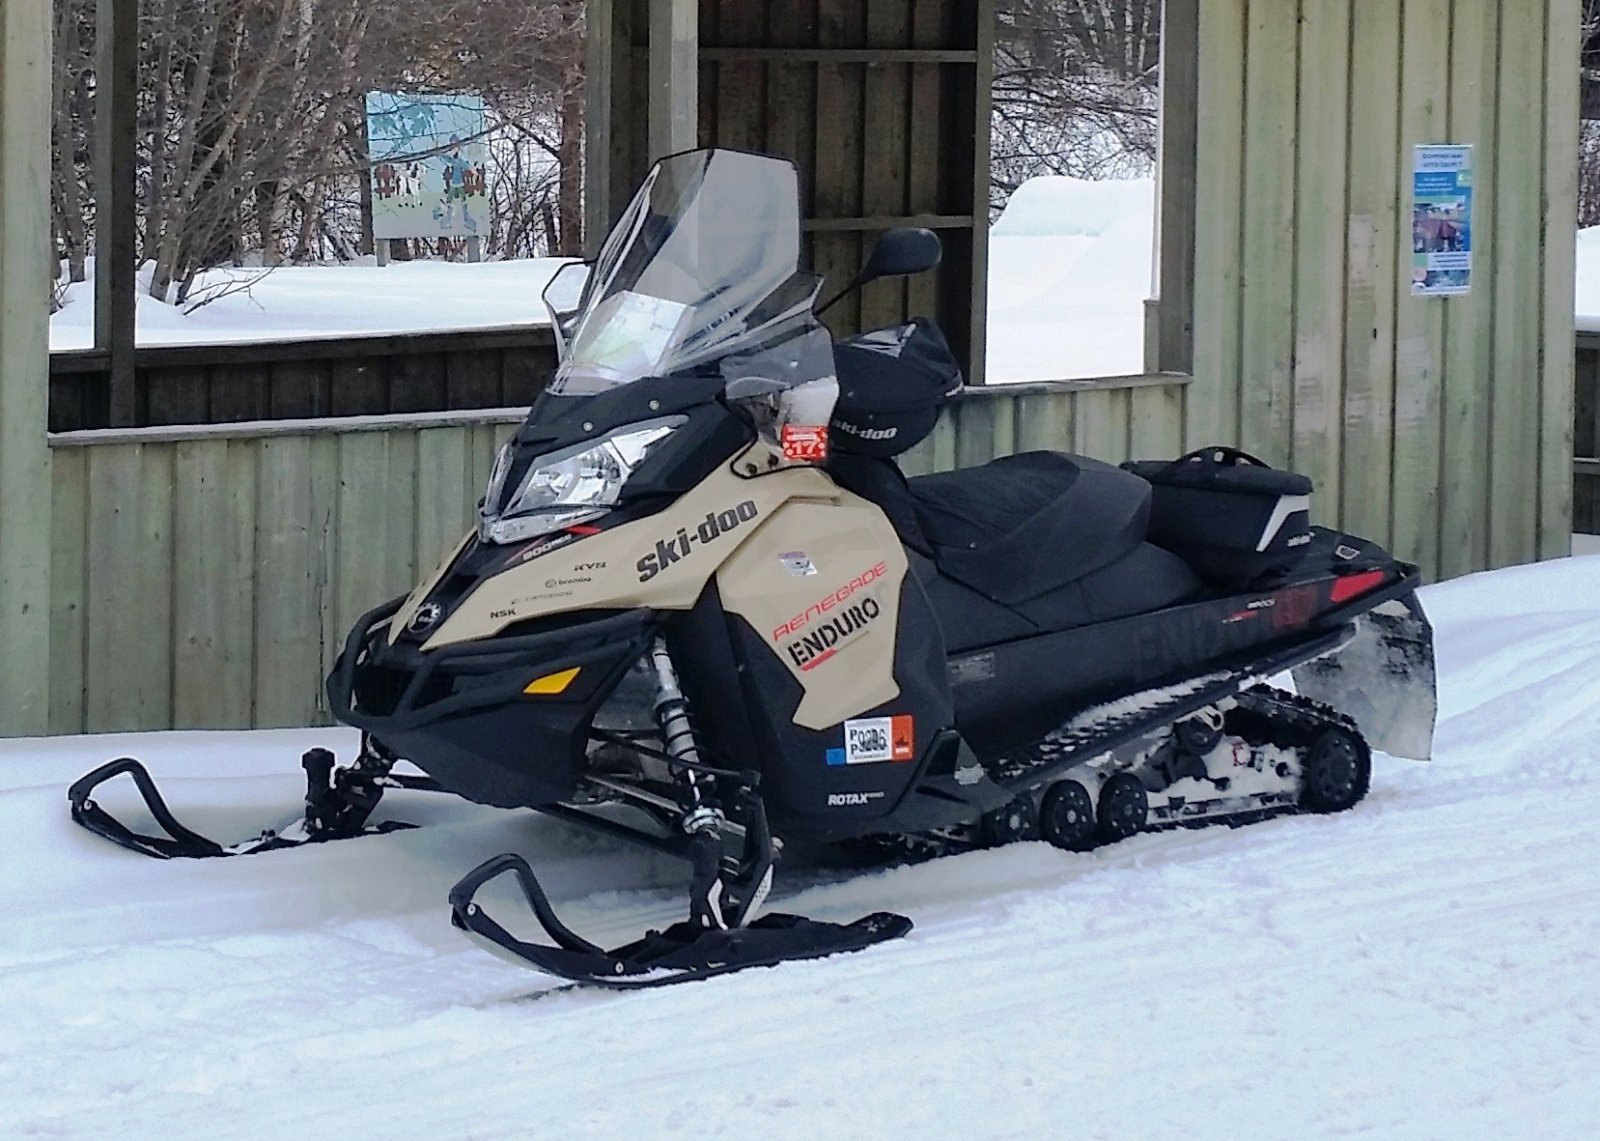 2016 Ski Doo Renegade Enduro 900ace Snowmobiles For Sale